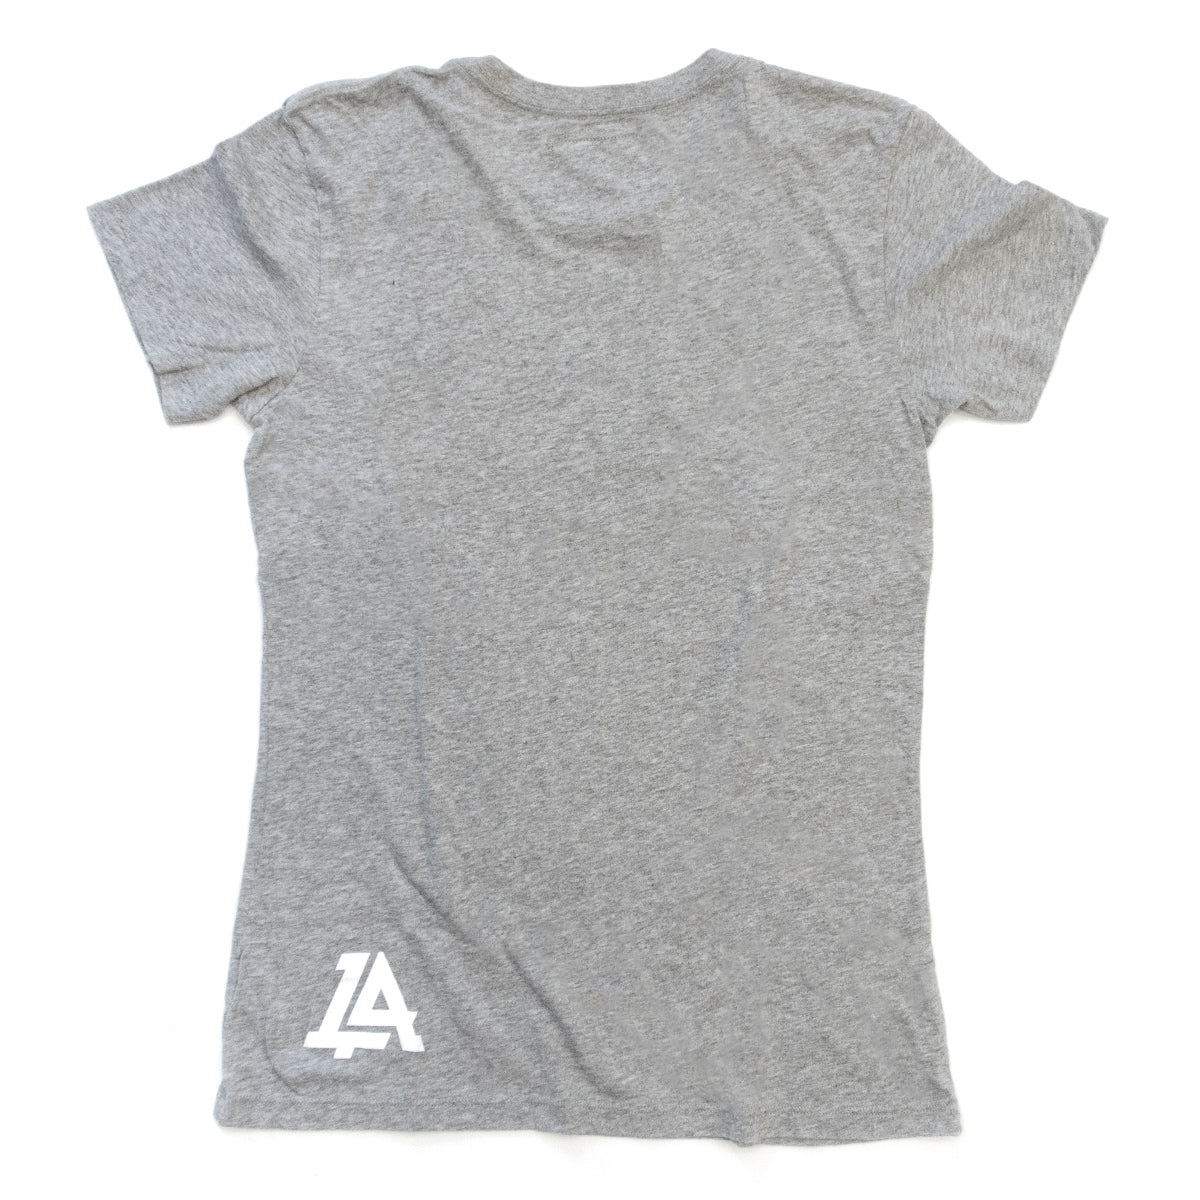 Lost Art Canada - white on grey basic women logo tee back view